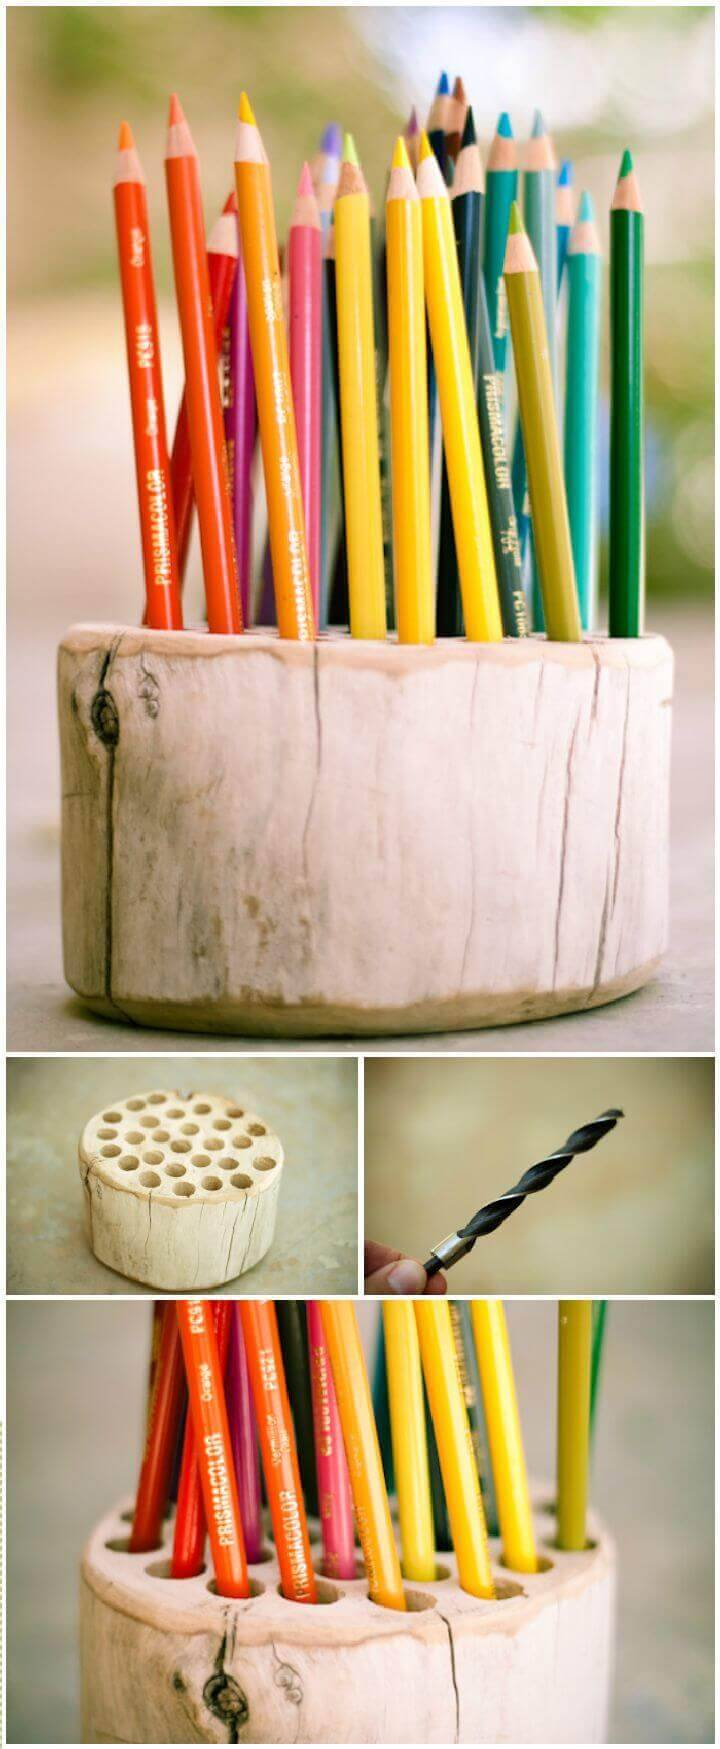 Pencil Holder DIY Ideas